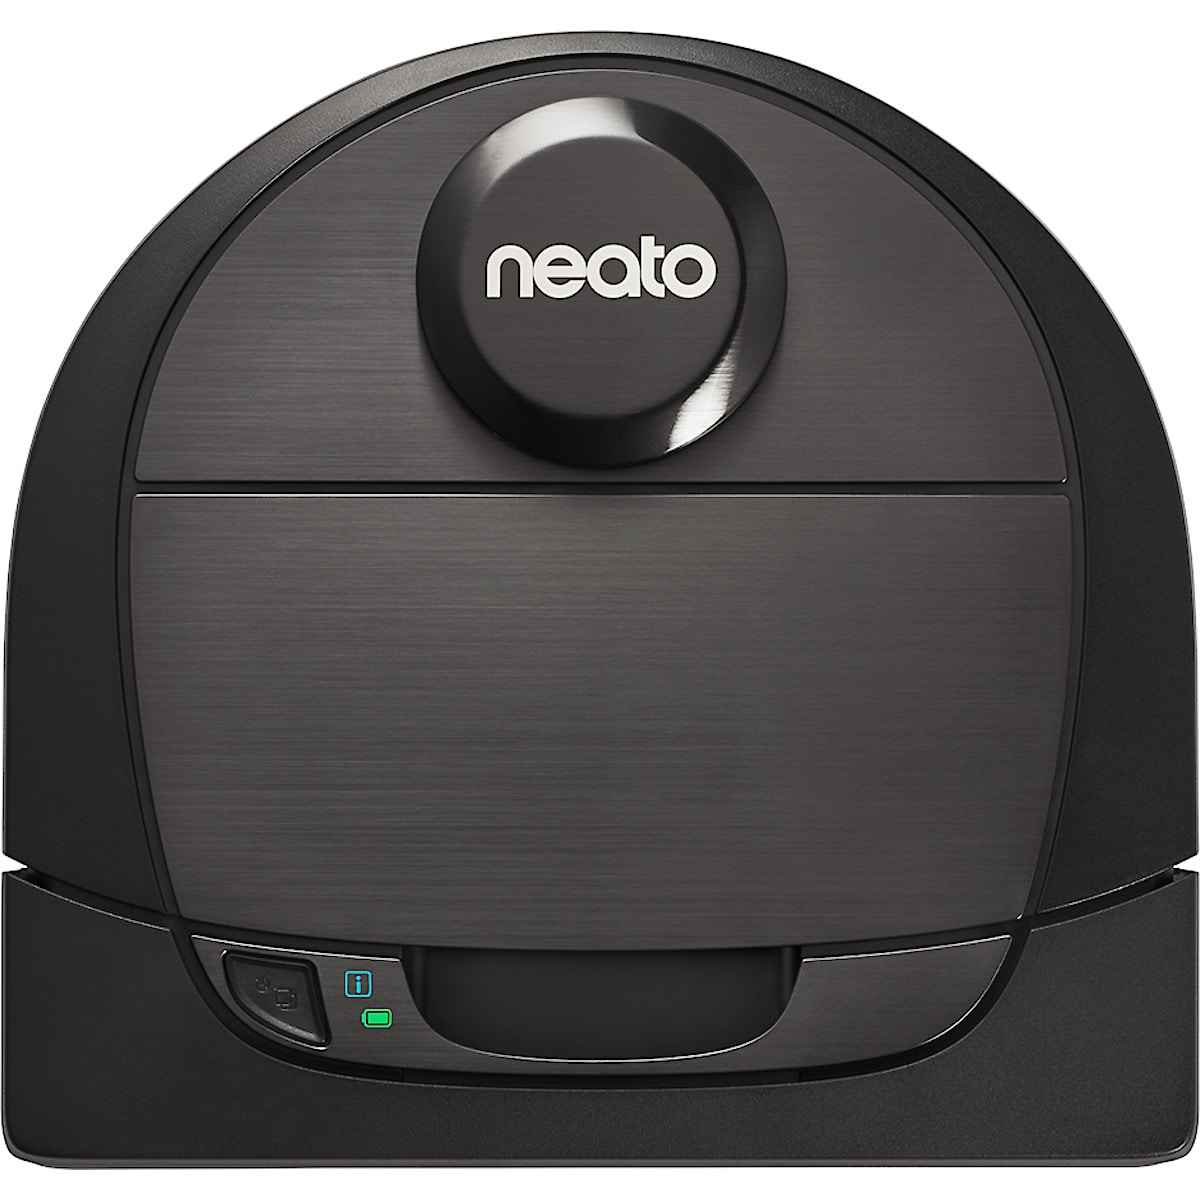 Neato Botvac D6 Connected robotstøvsuger